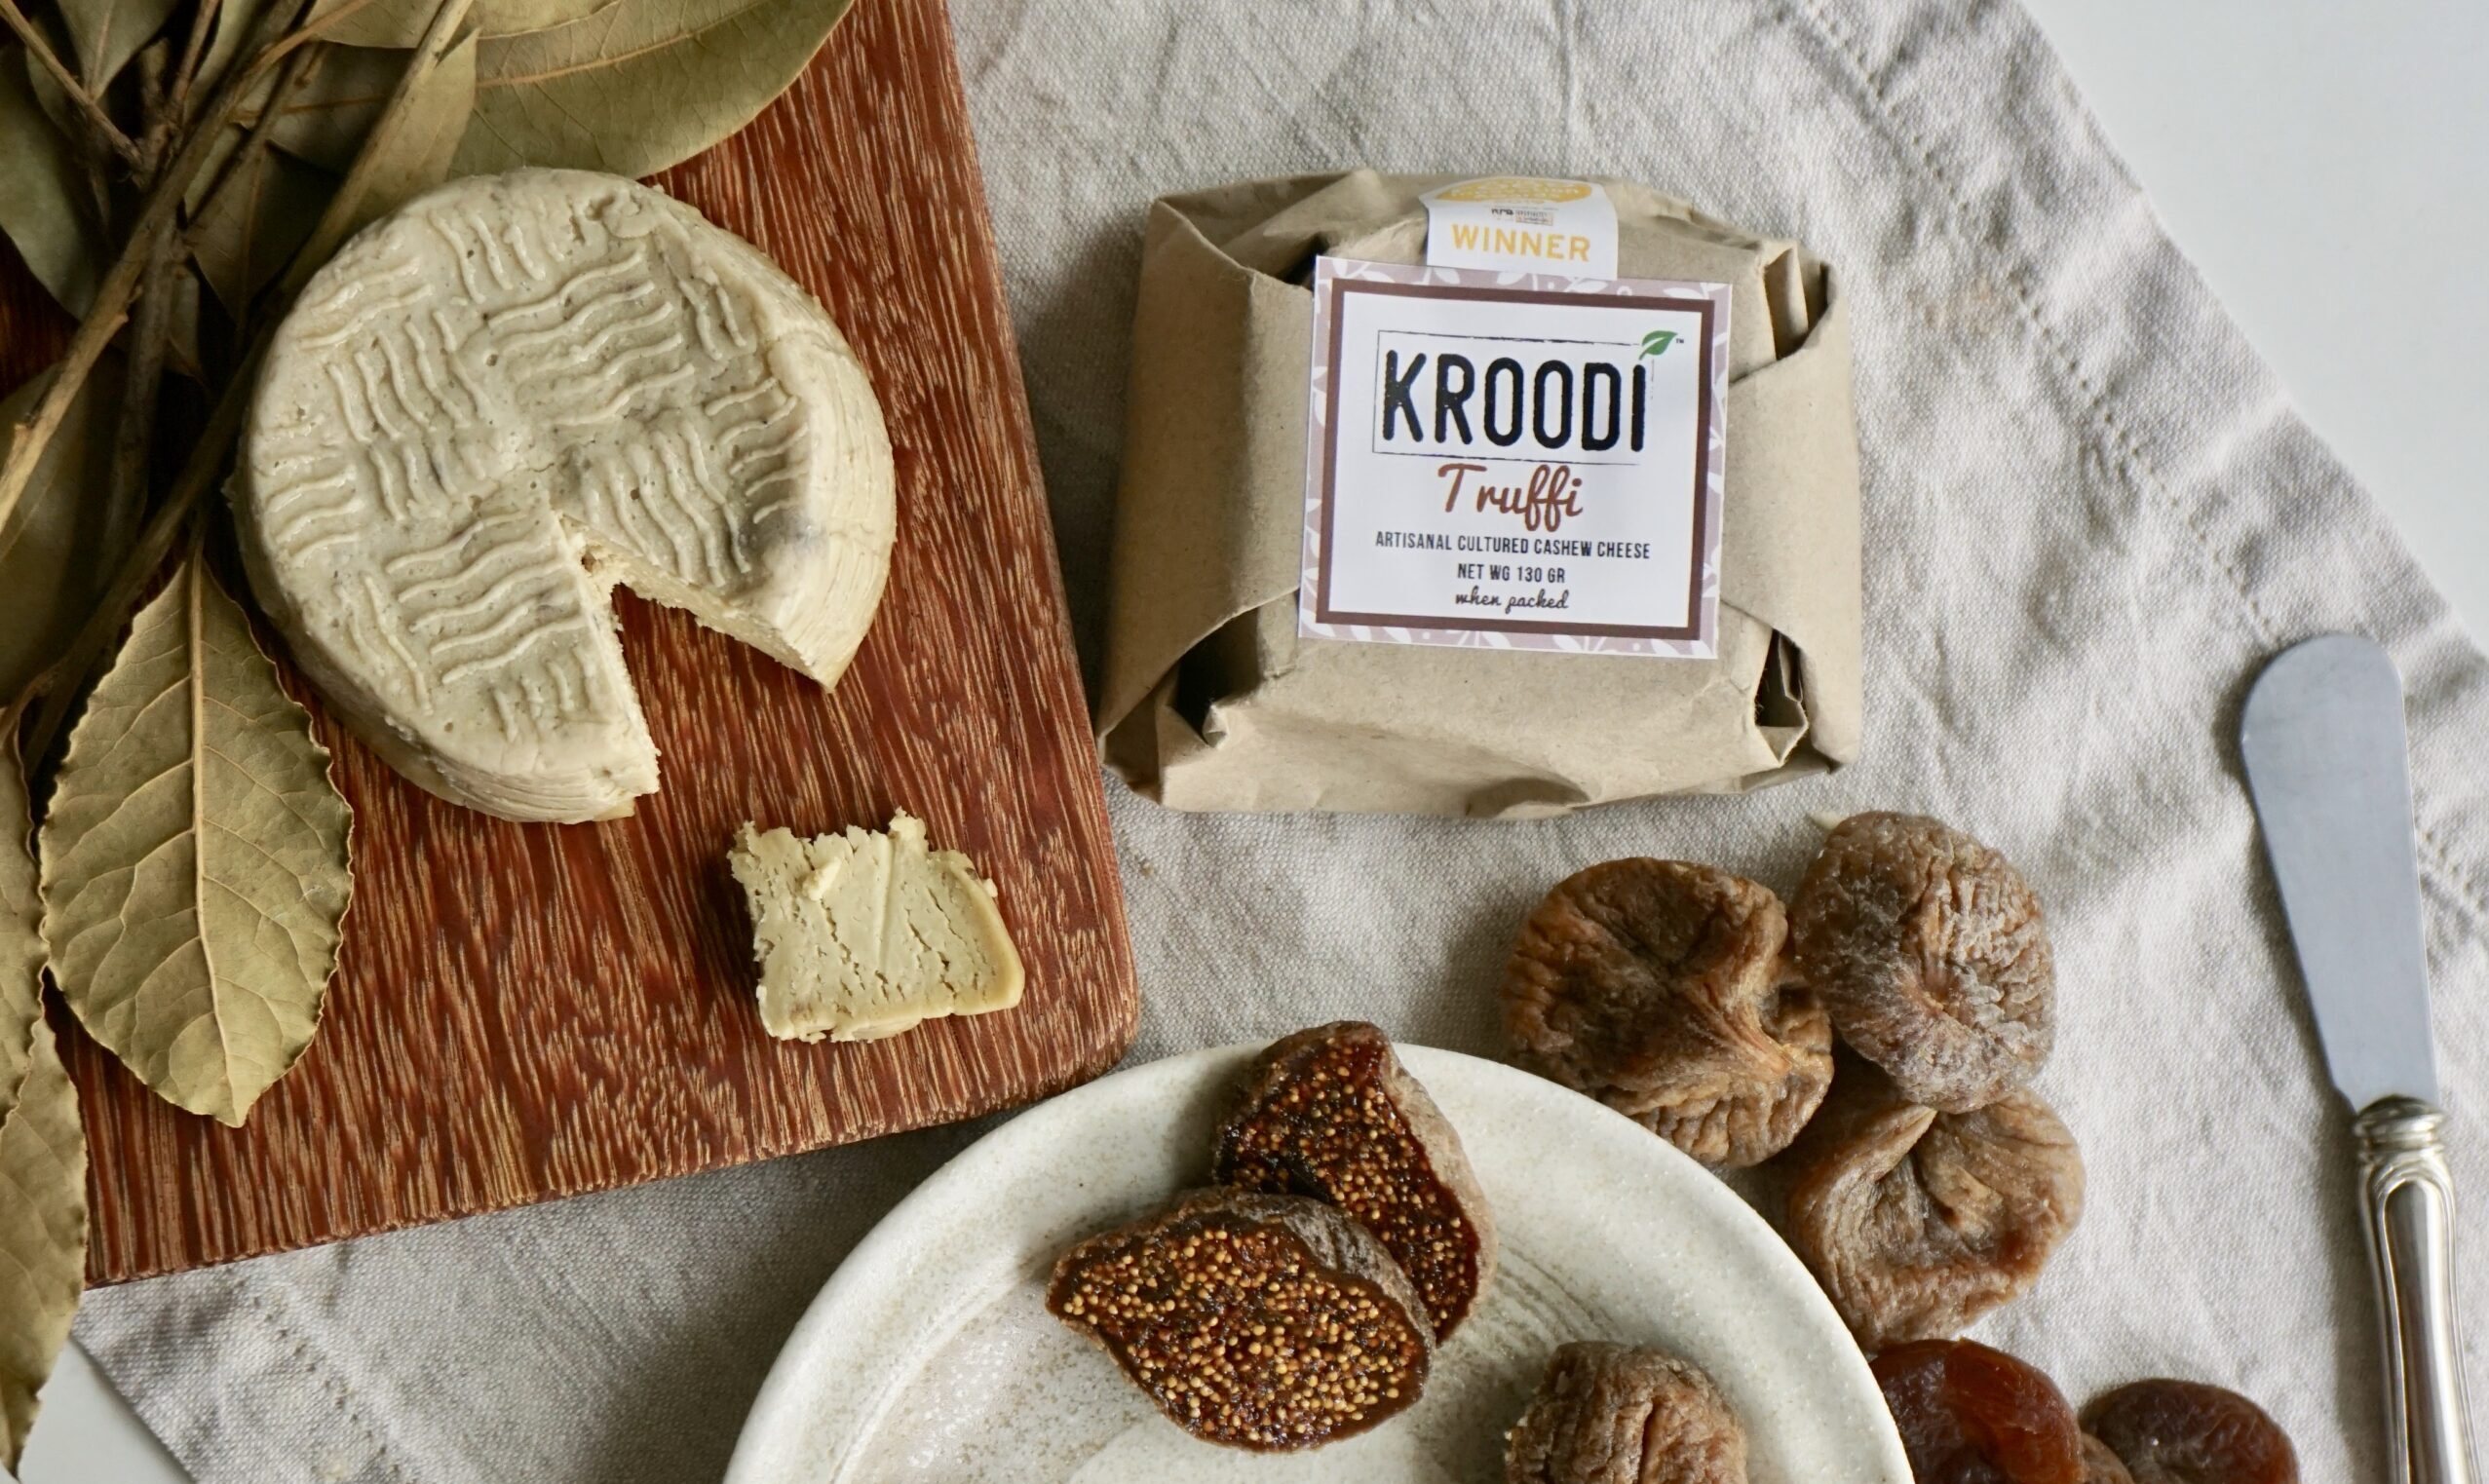 kroodi cheese